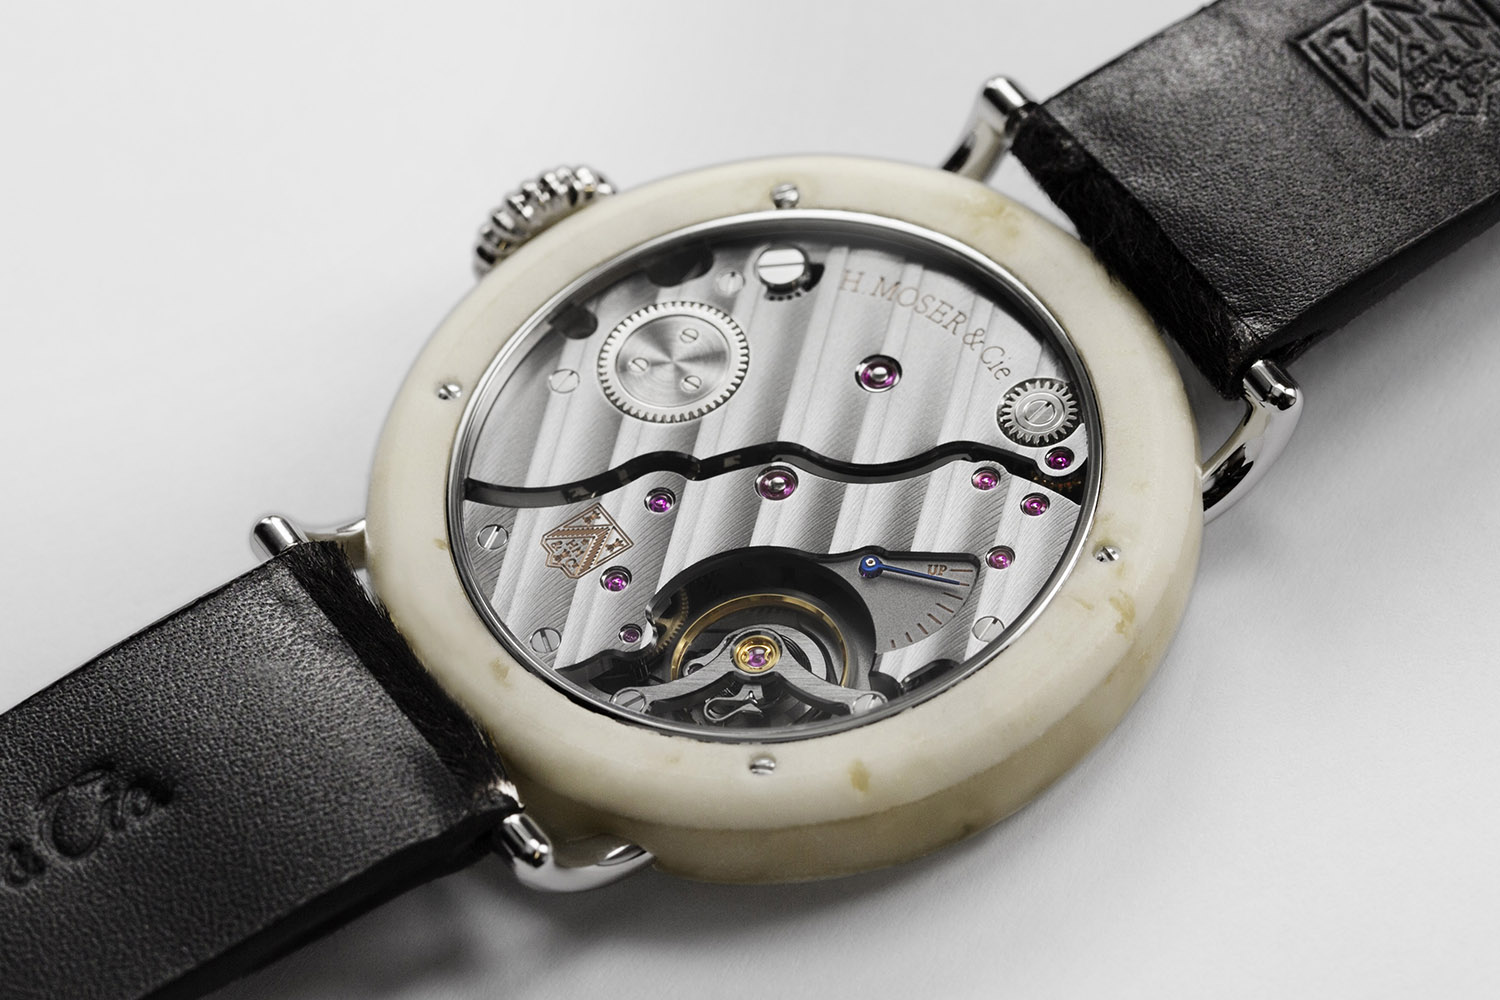 Moser Swiss Mad Watch - Most Swiss Watch Ever with a Swiss Cheese case